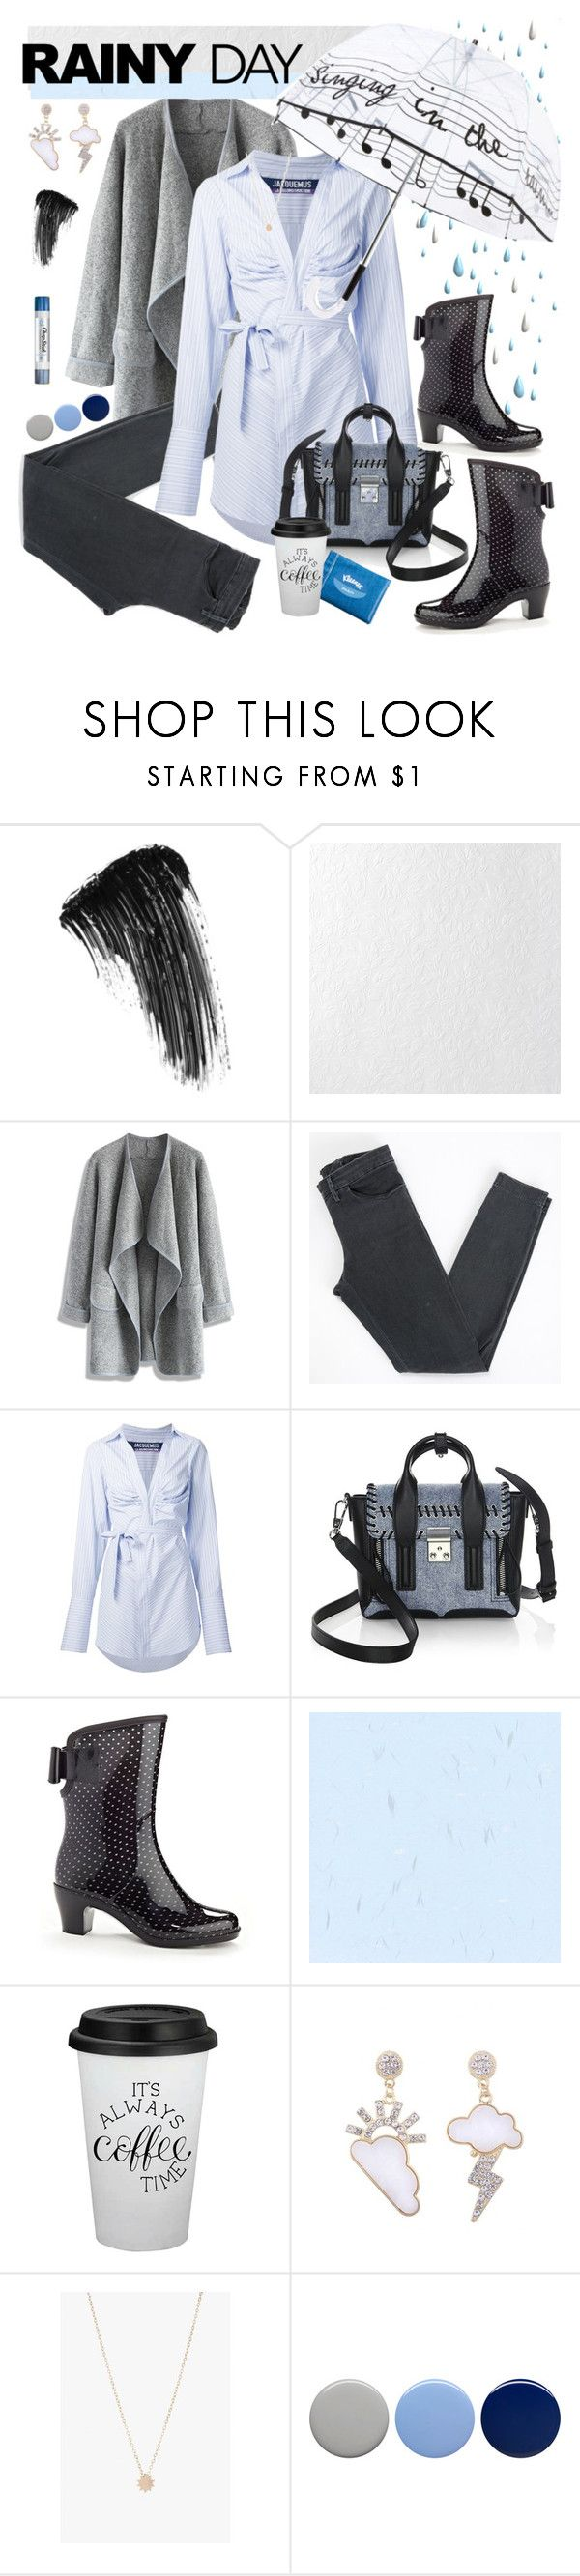 """Splash Splash: Rainy Day Style"" by hubunch ❤ liked on Polyvore featuring Eyeko, Graham & Brown, Chicwish, Acne Studios, Jacquemus, 3.1 Phillip Lim, Kleenex, Henry Ferrera, Carmen Diaz and Chapstick"